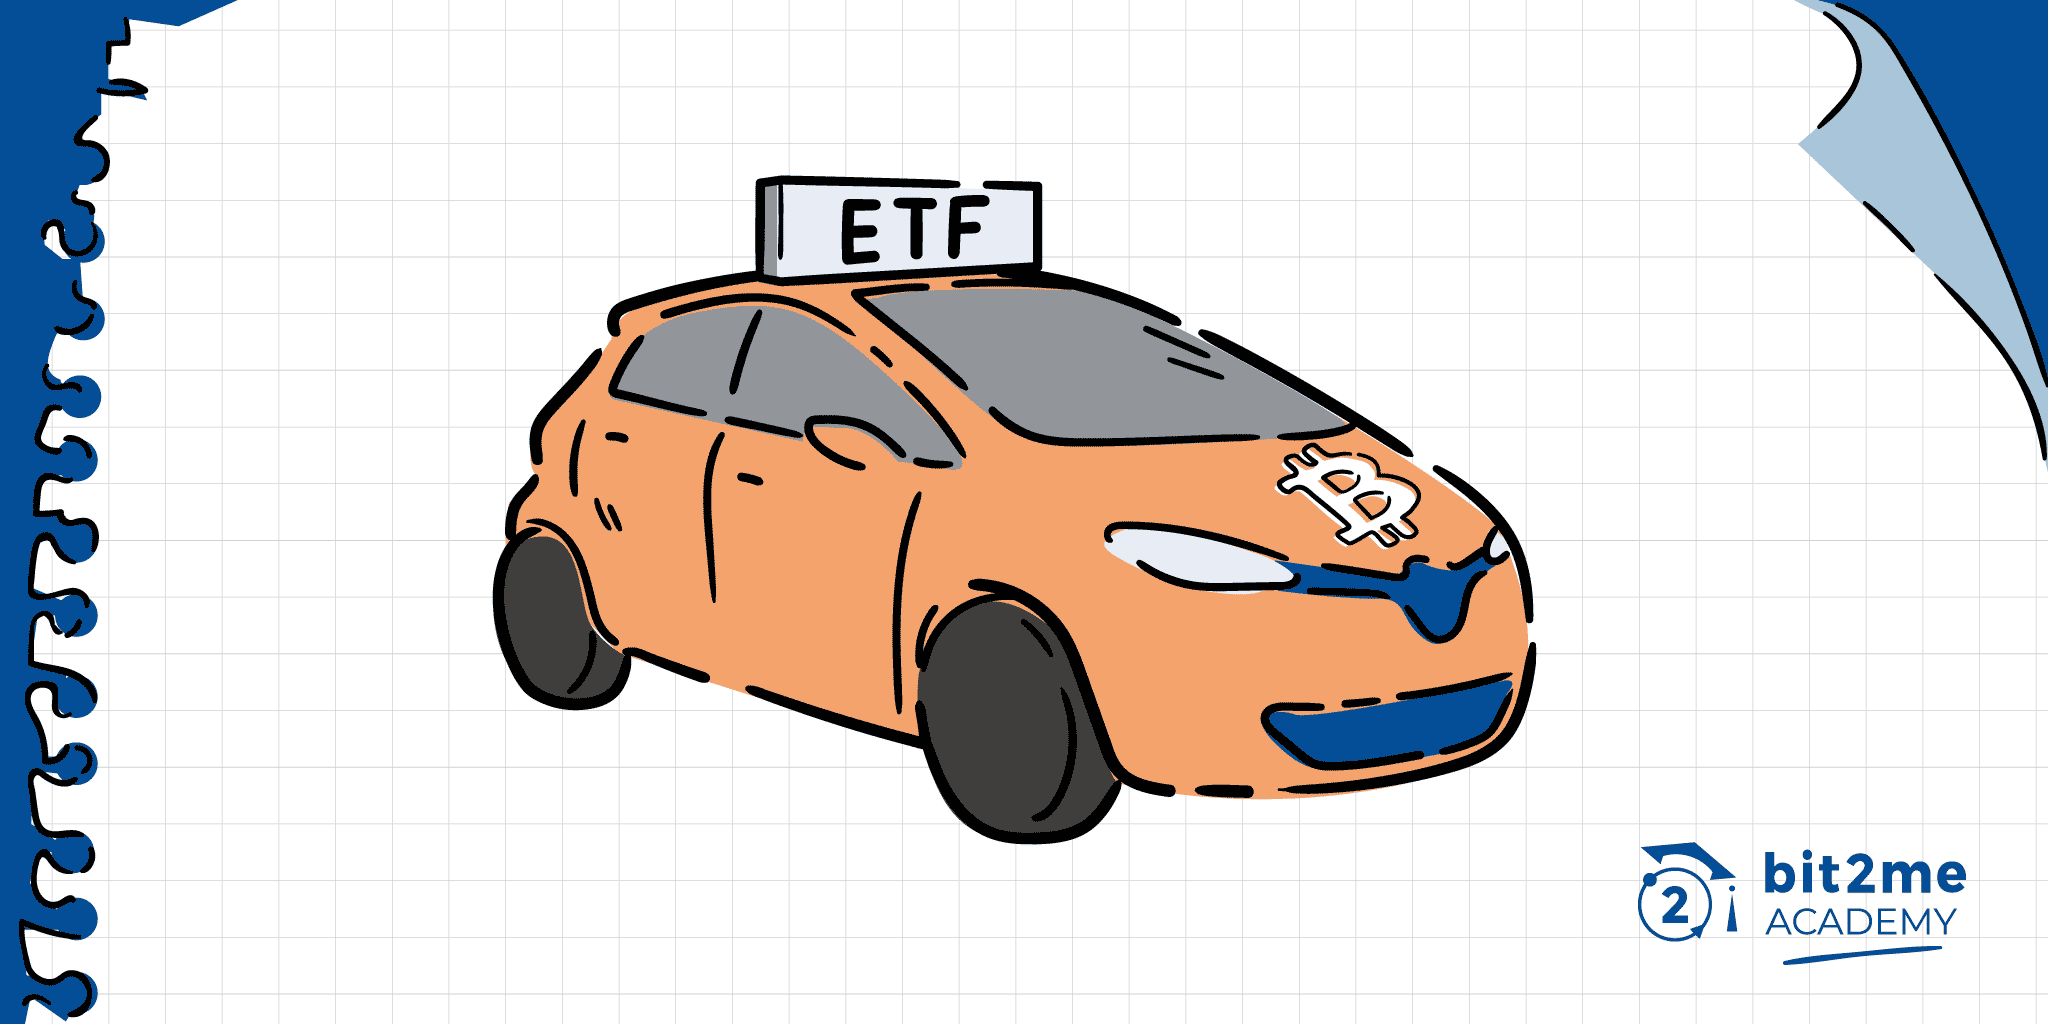 que es etf, etf criptomonedas, etf bitcoin, exchange trade fund, exchange trade fund bitcoin